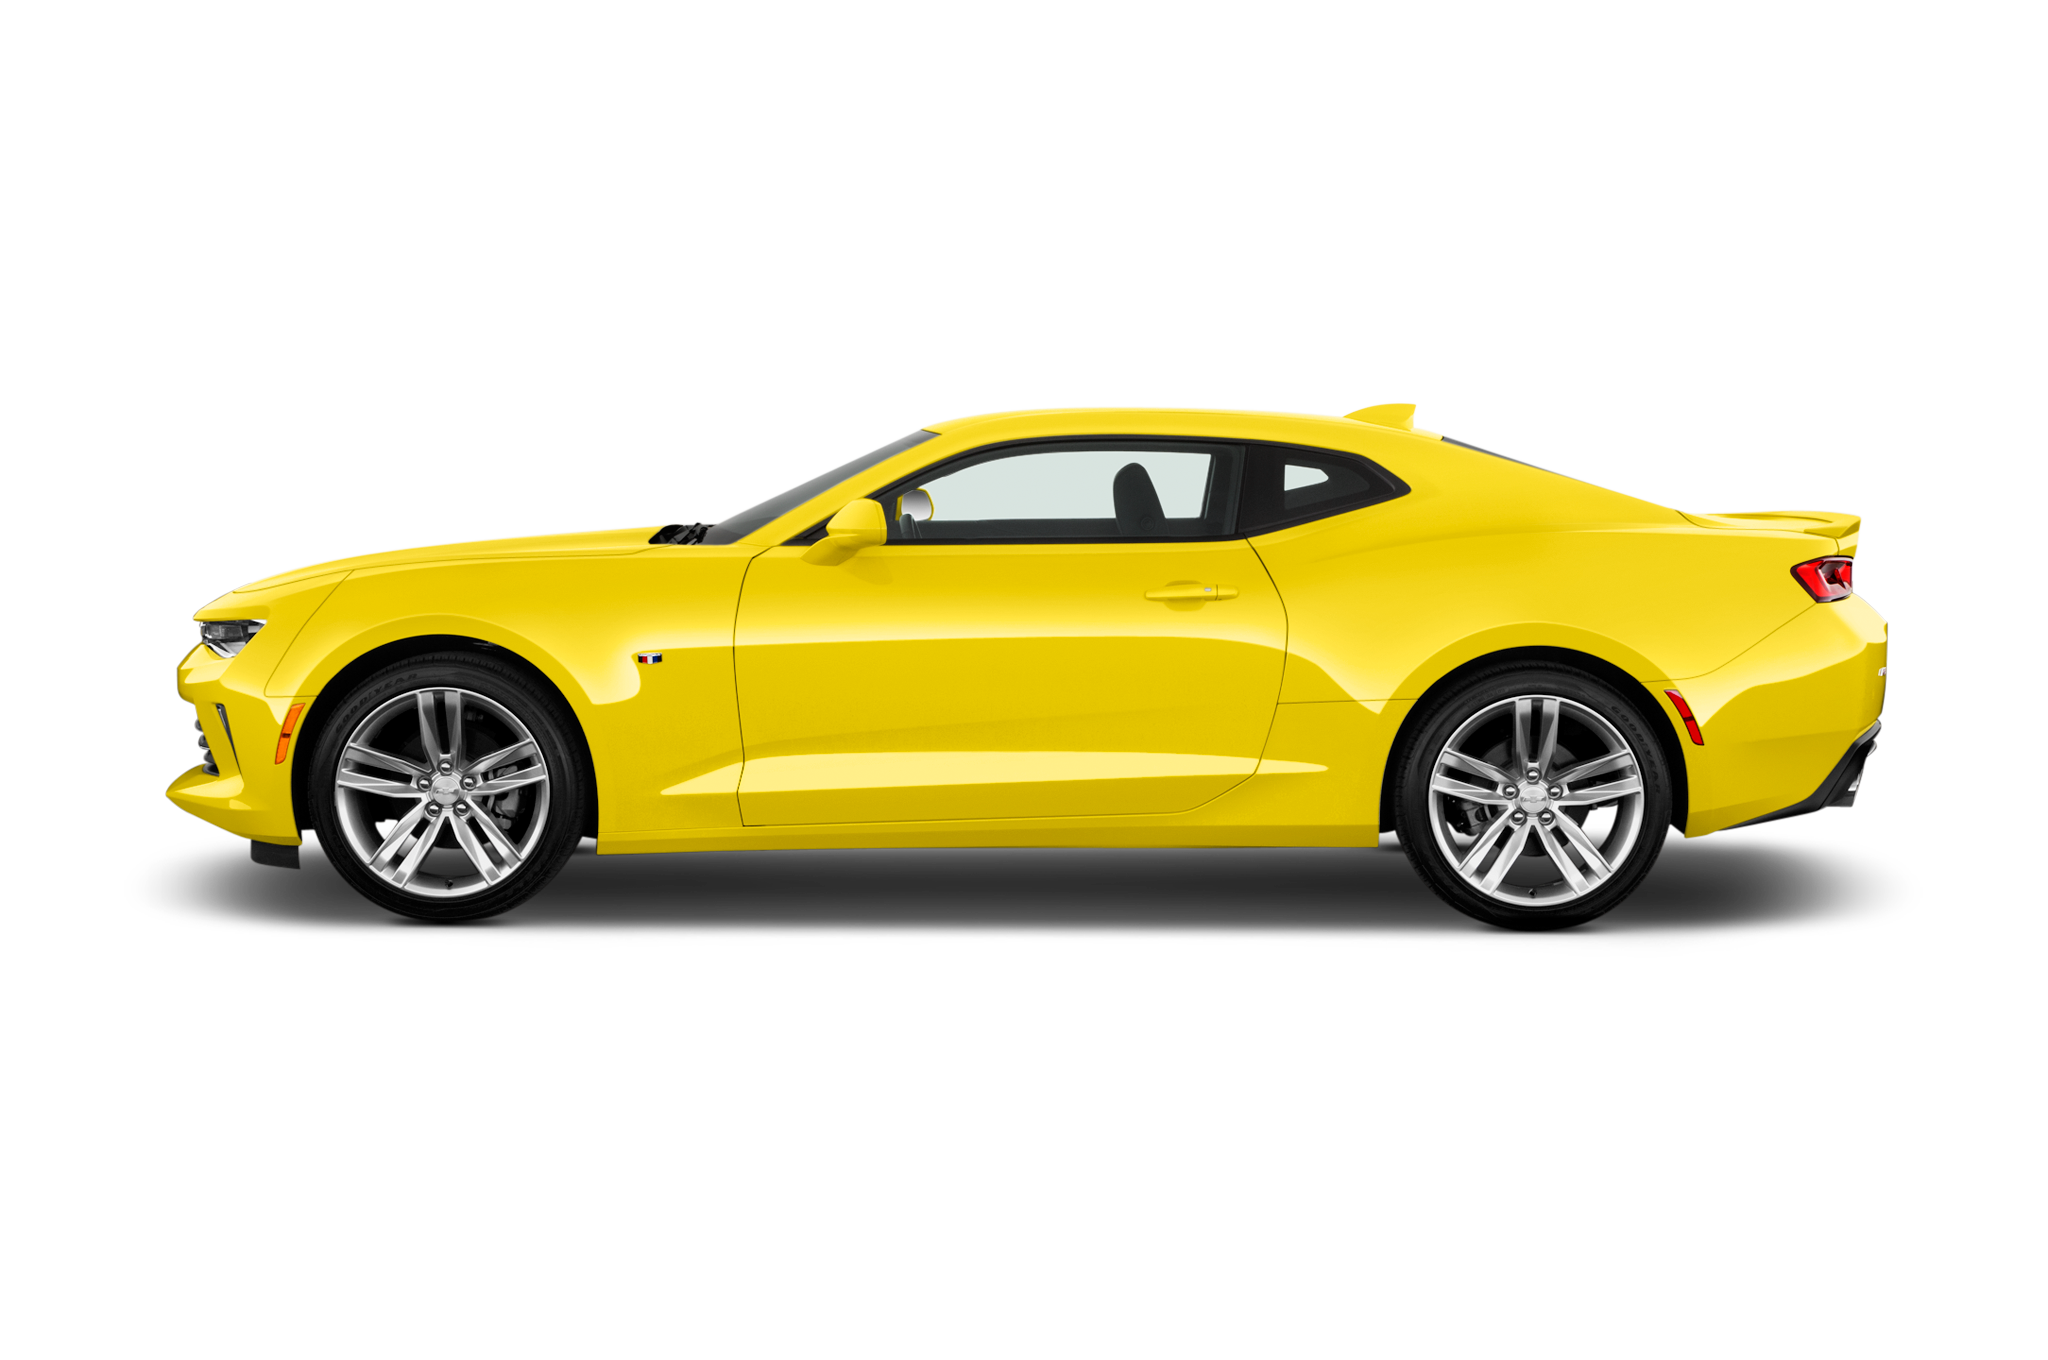 Muscle car clipart free banner transparent Say Hello to the 2018 Chevrolet Camaro ZL1 1LE | Automobile Magazine banner transparent